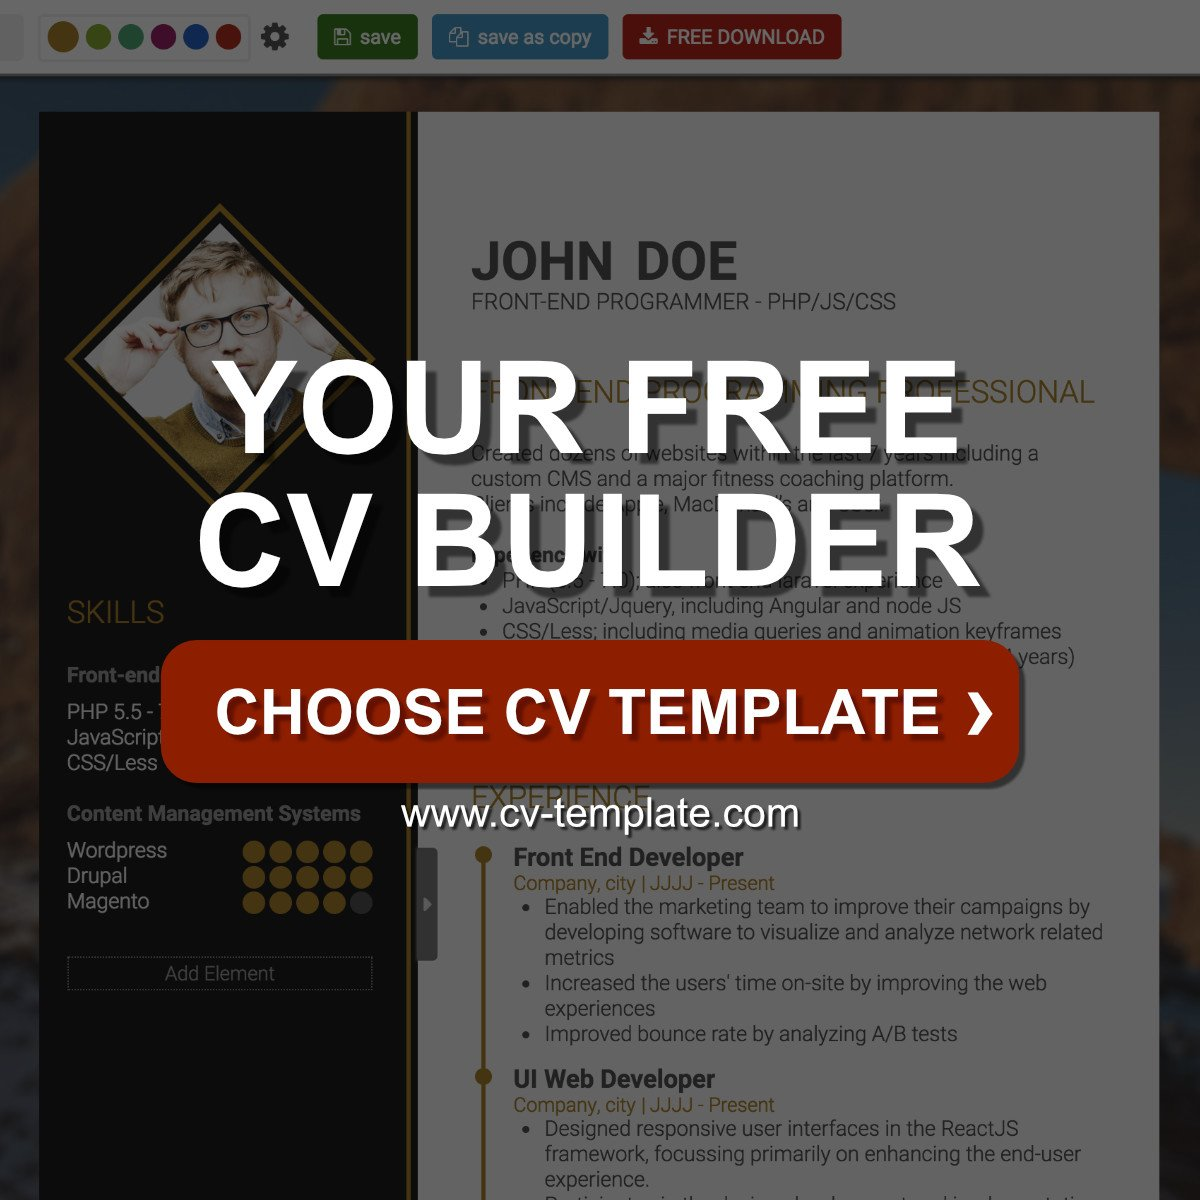 CV-Template | Free Online CV Builder, Best CV Templates